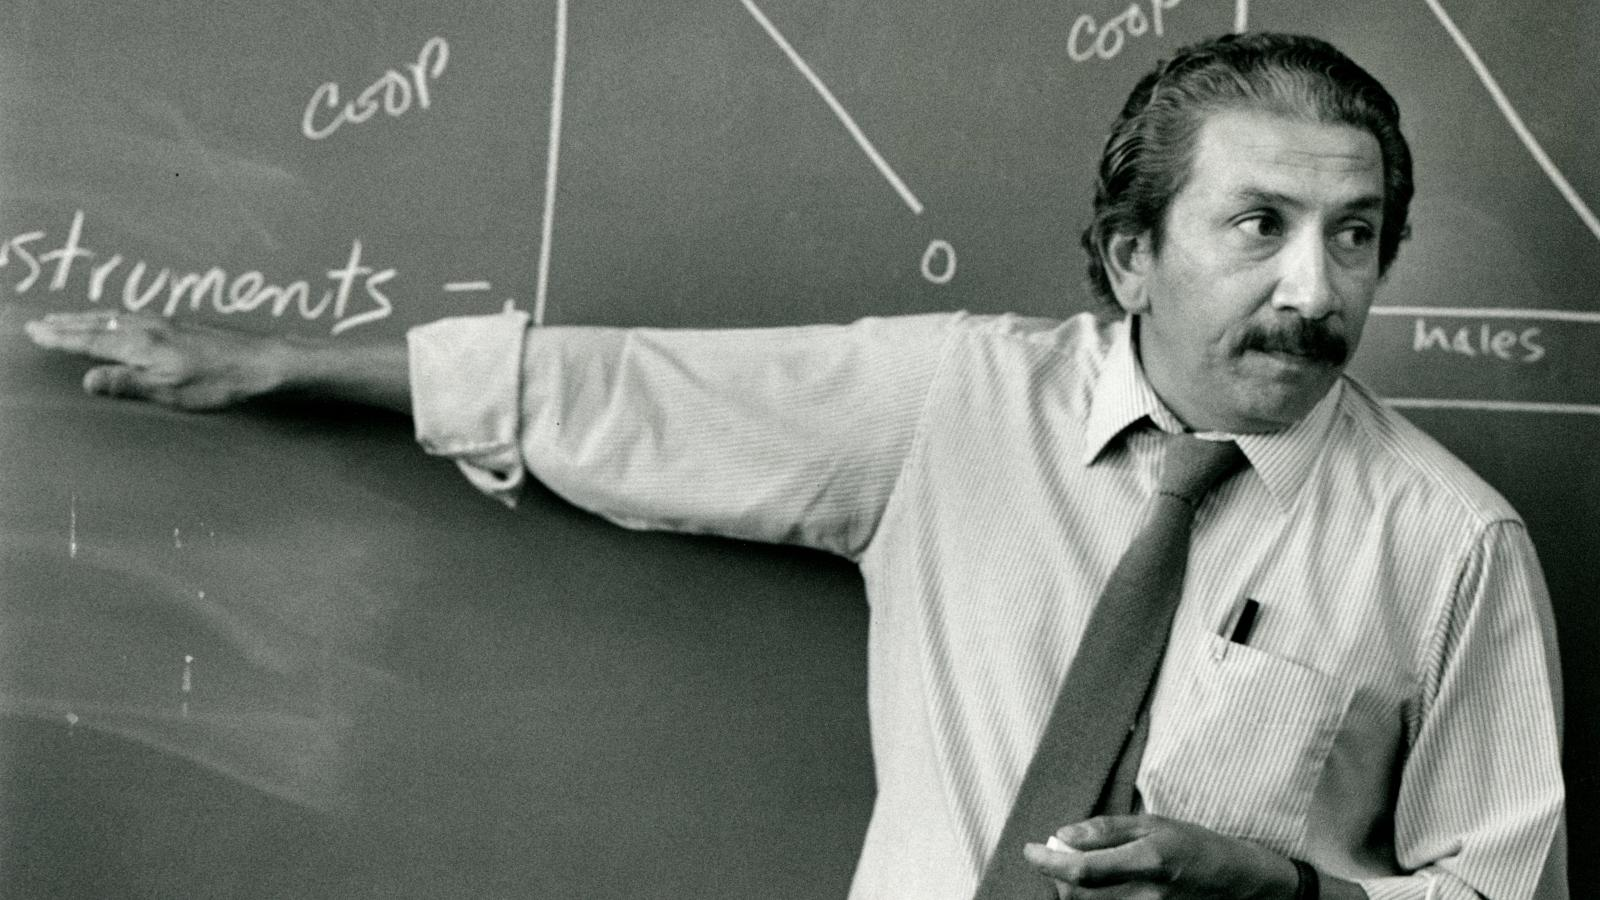 Ray Buriel teaching in front of a chalkboard.